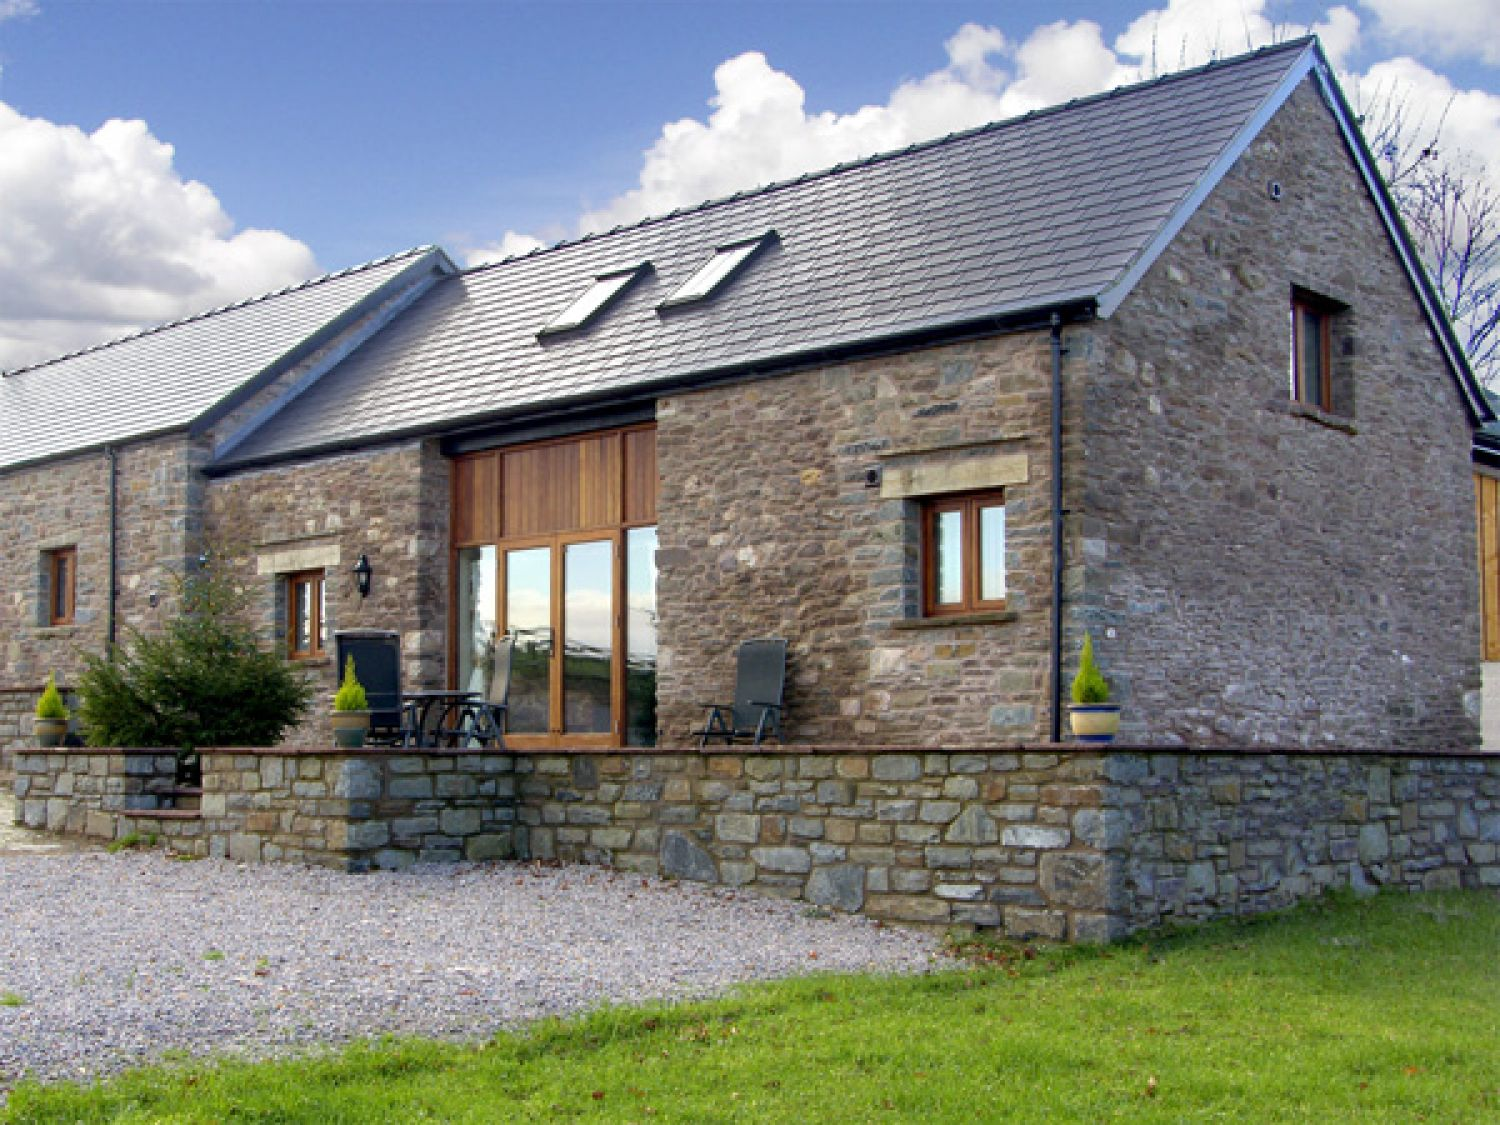 Millbrook Barn Llanddewi Skirrid Self Catering Holiday